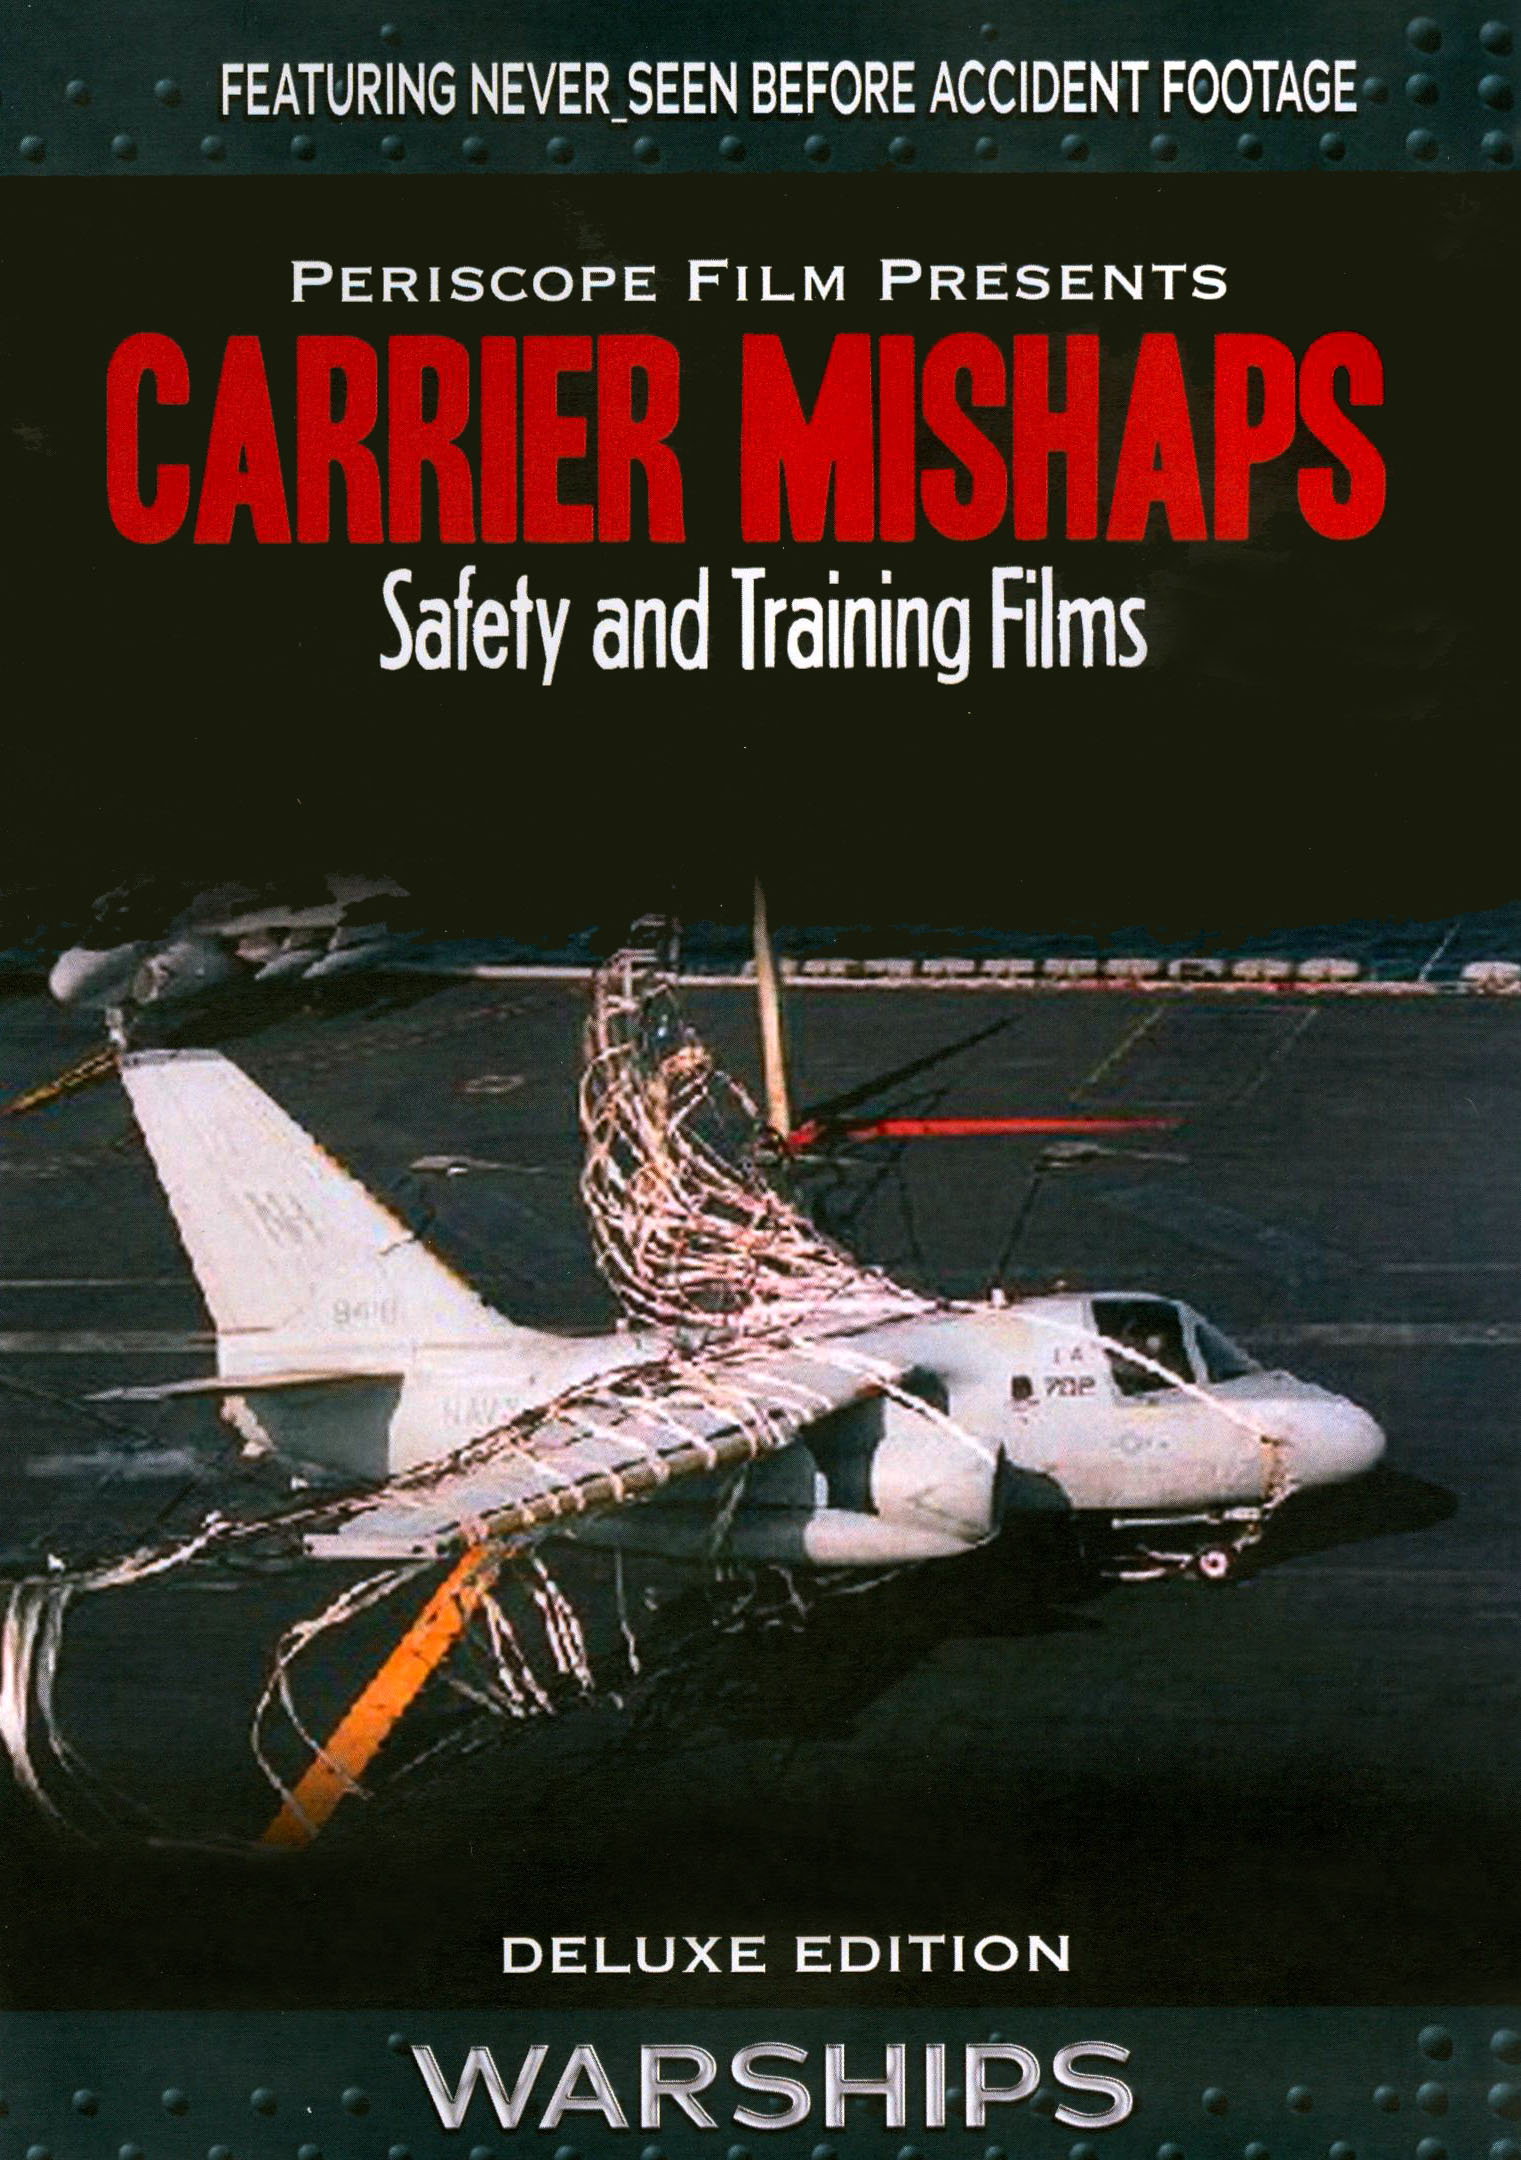 Carrier Mishaps: Safety and Training Films